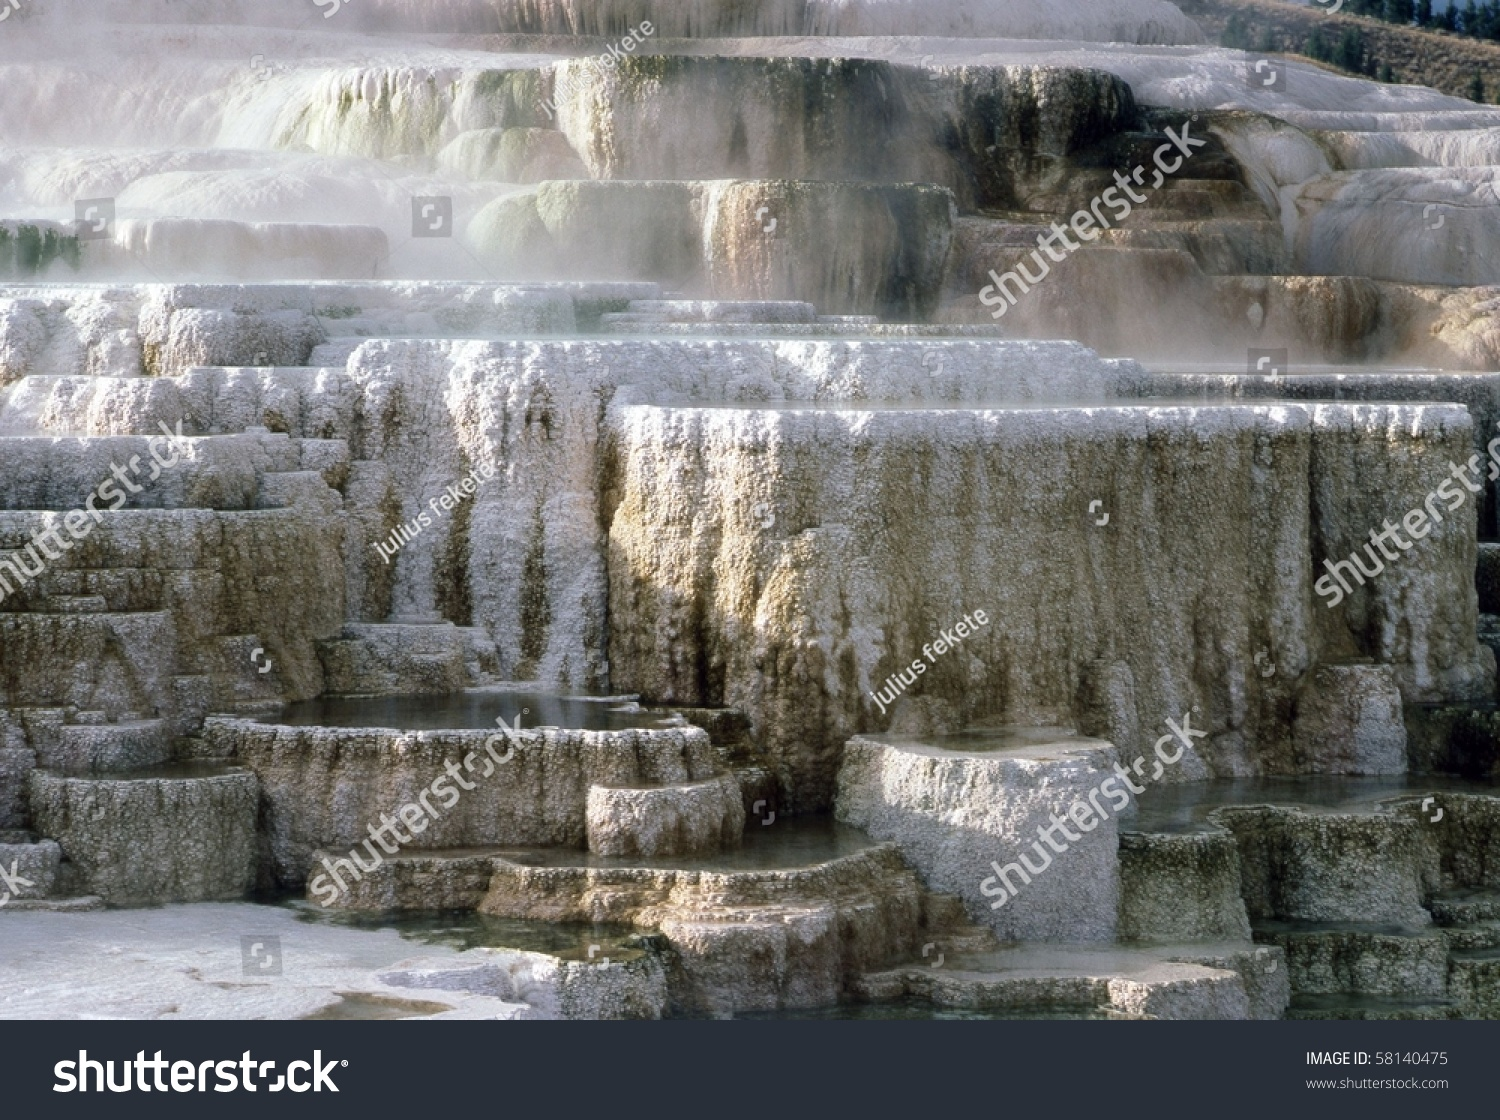 Minerva terrace at mammoth hot springs in yellowstone for Minerva terrace yellowstone